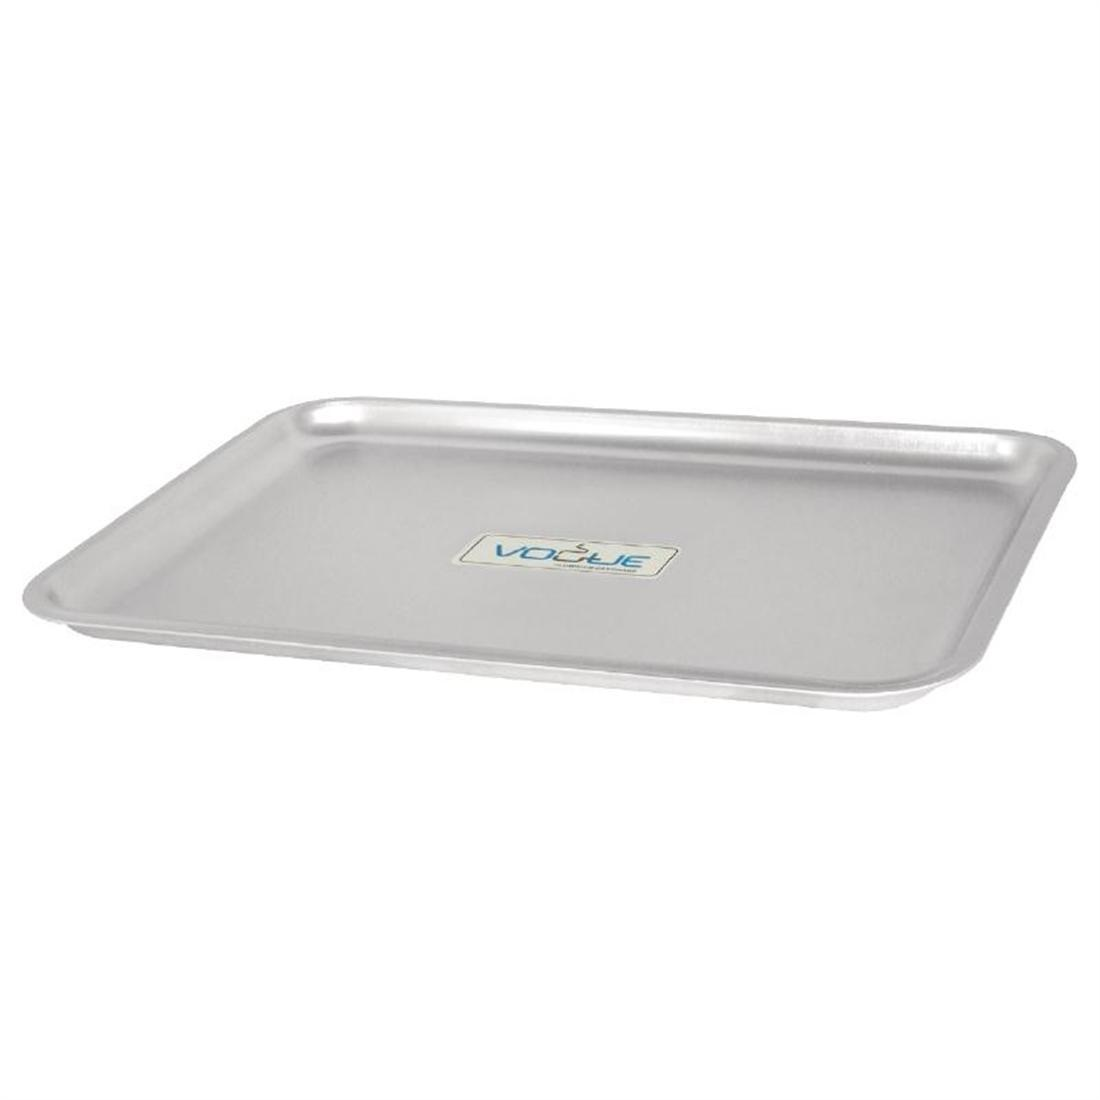 Vogue Aluminium Baking Tray 425 x 311mm - Each - K444